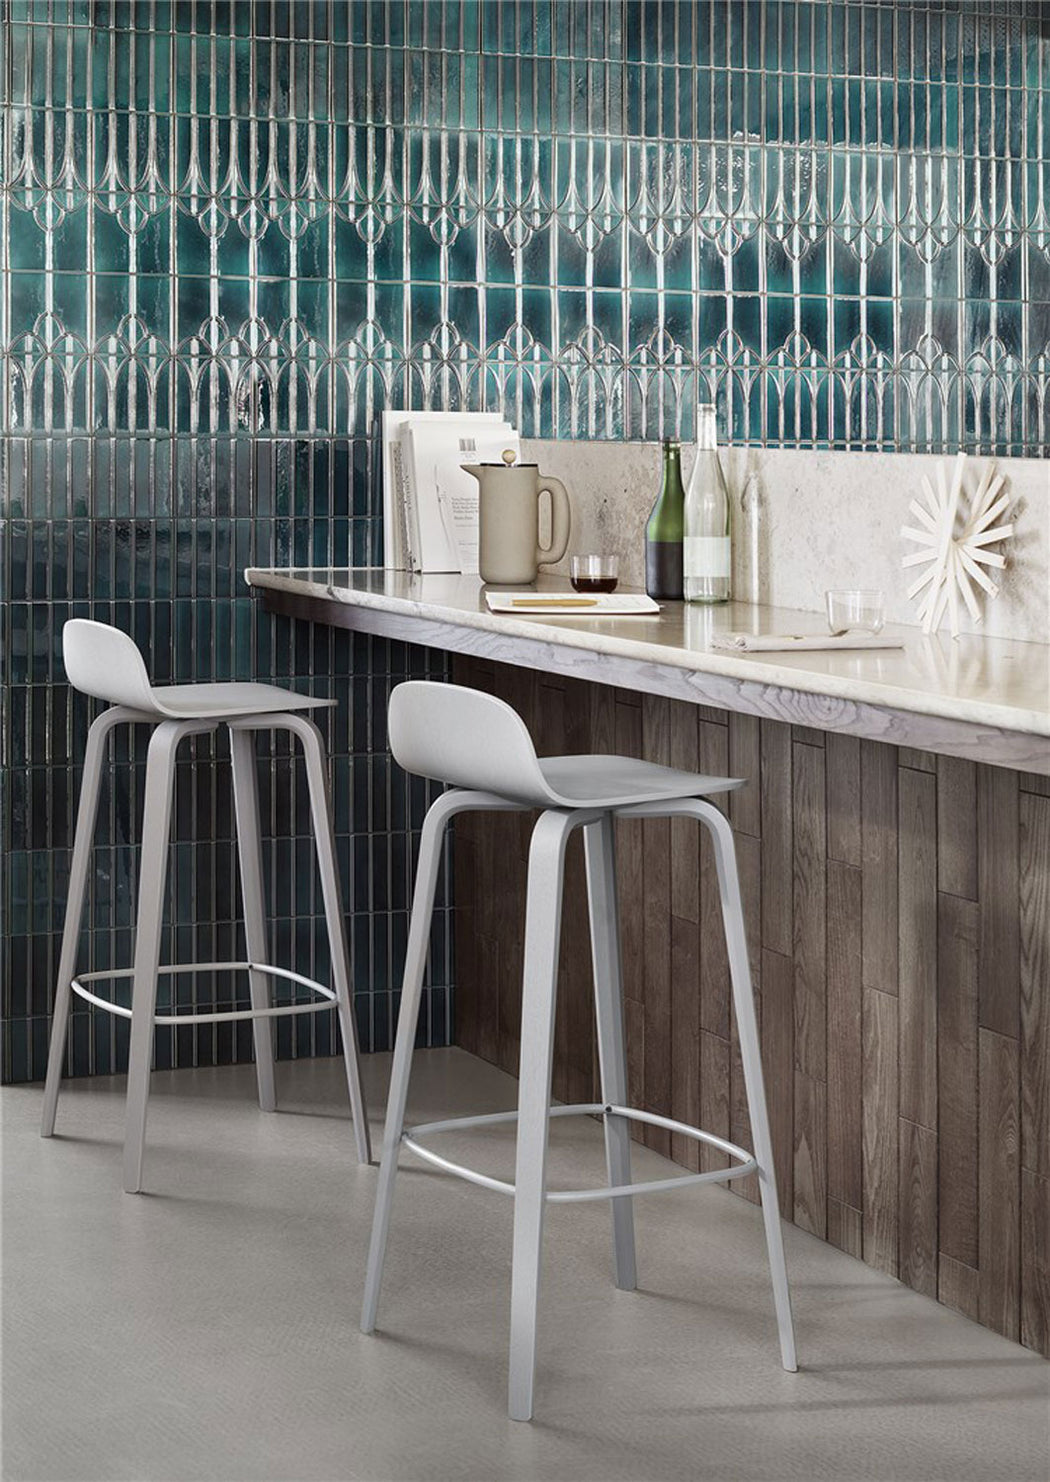 Visu Bar Stool, Lifestyle